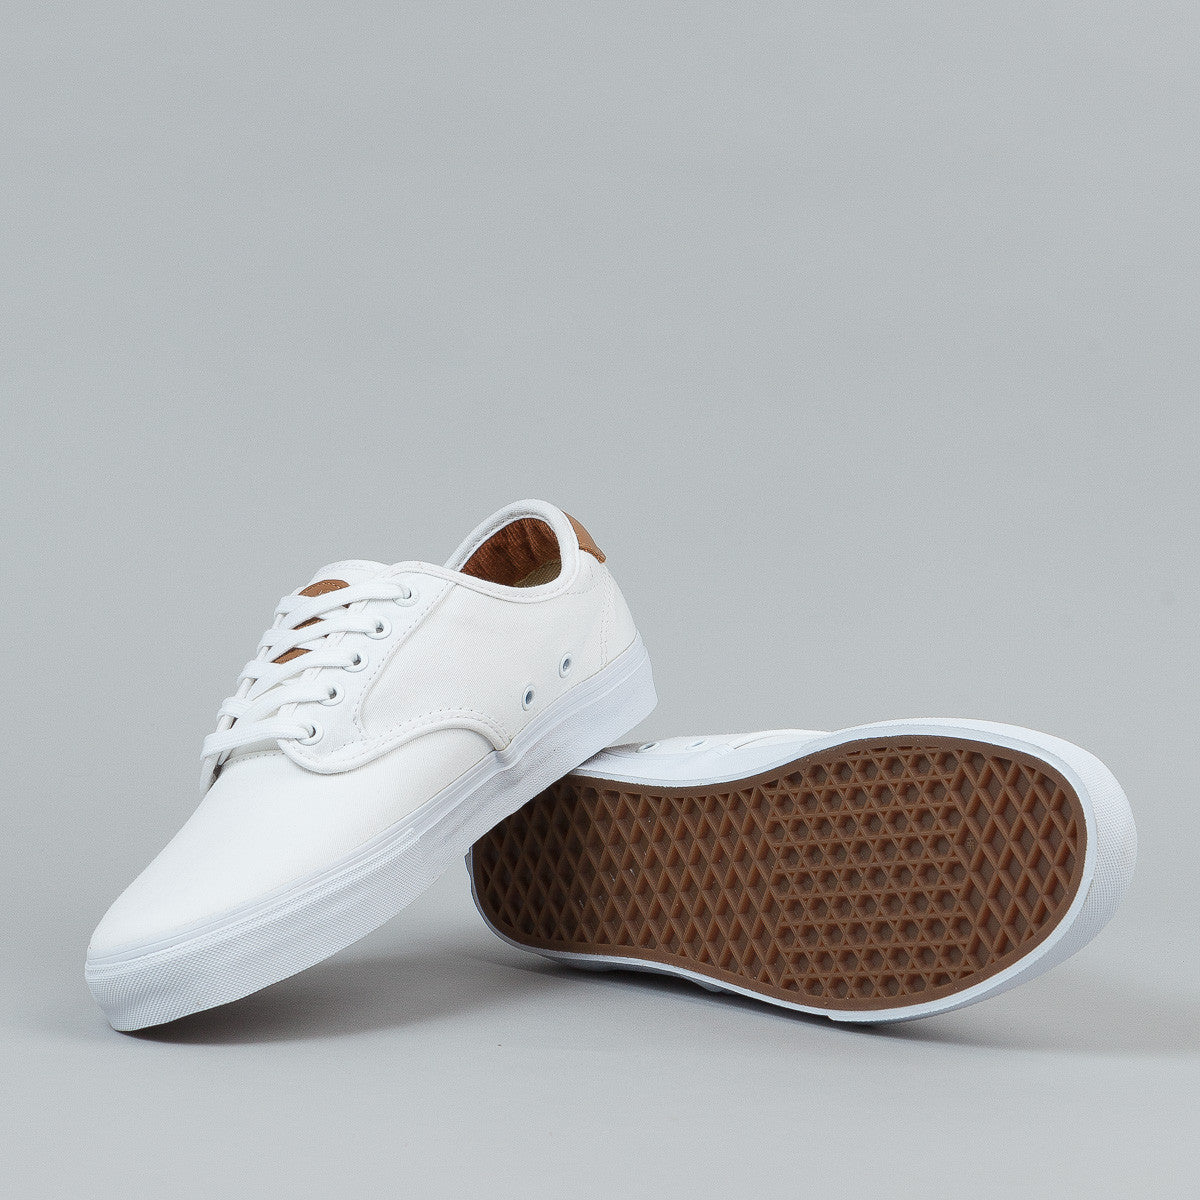 Vans Chima Ferguson Pro Shoes - White / White